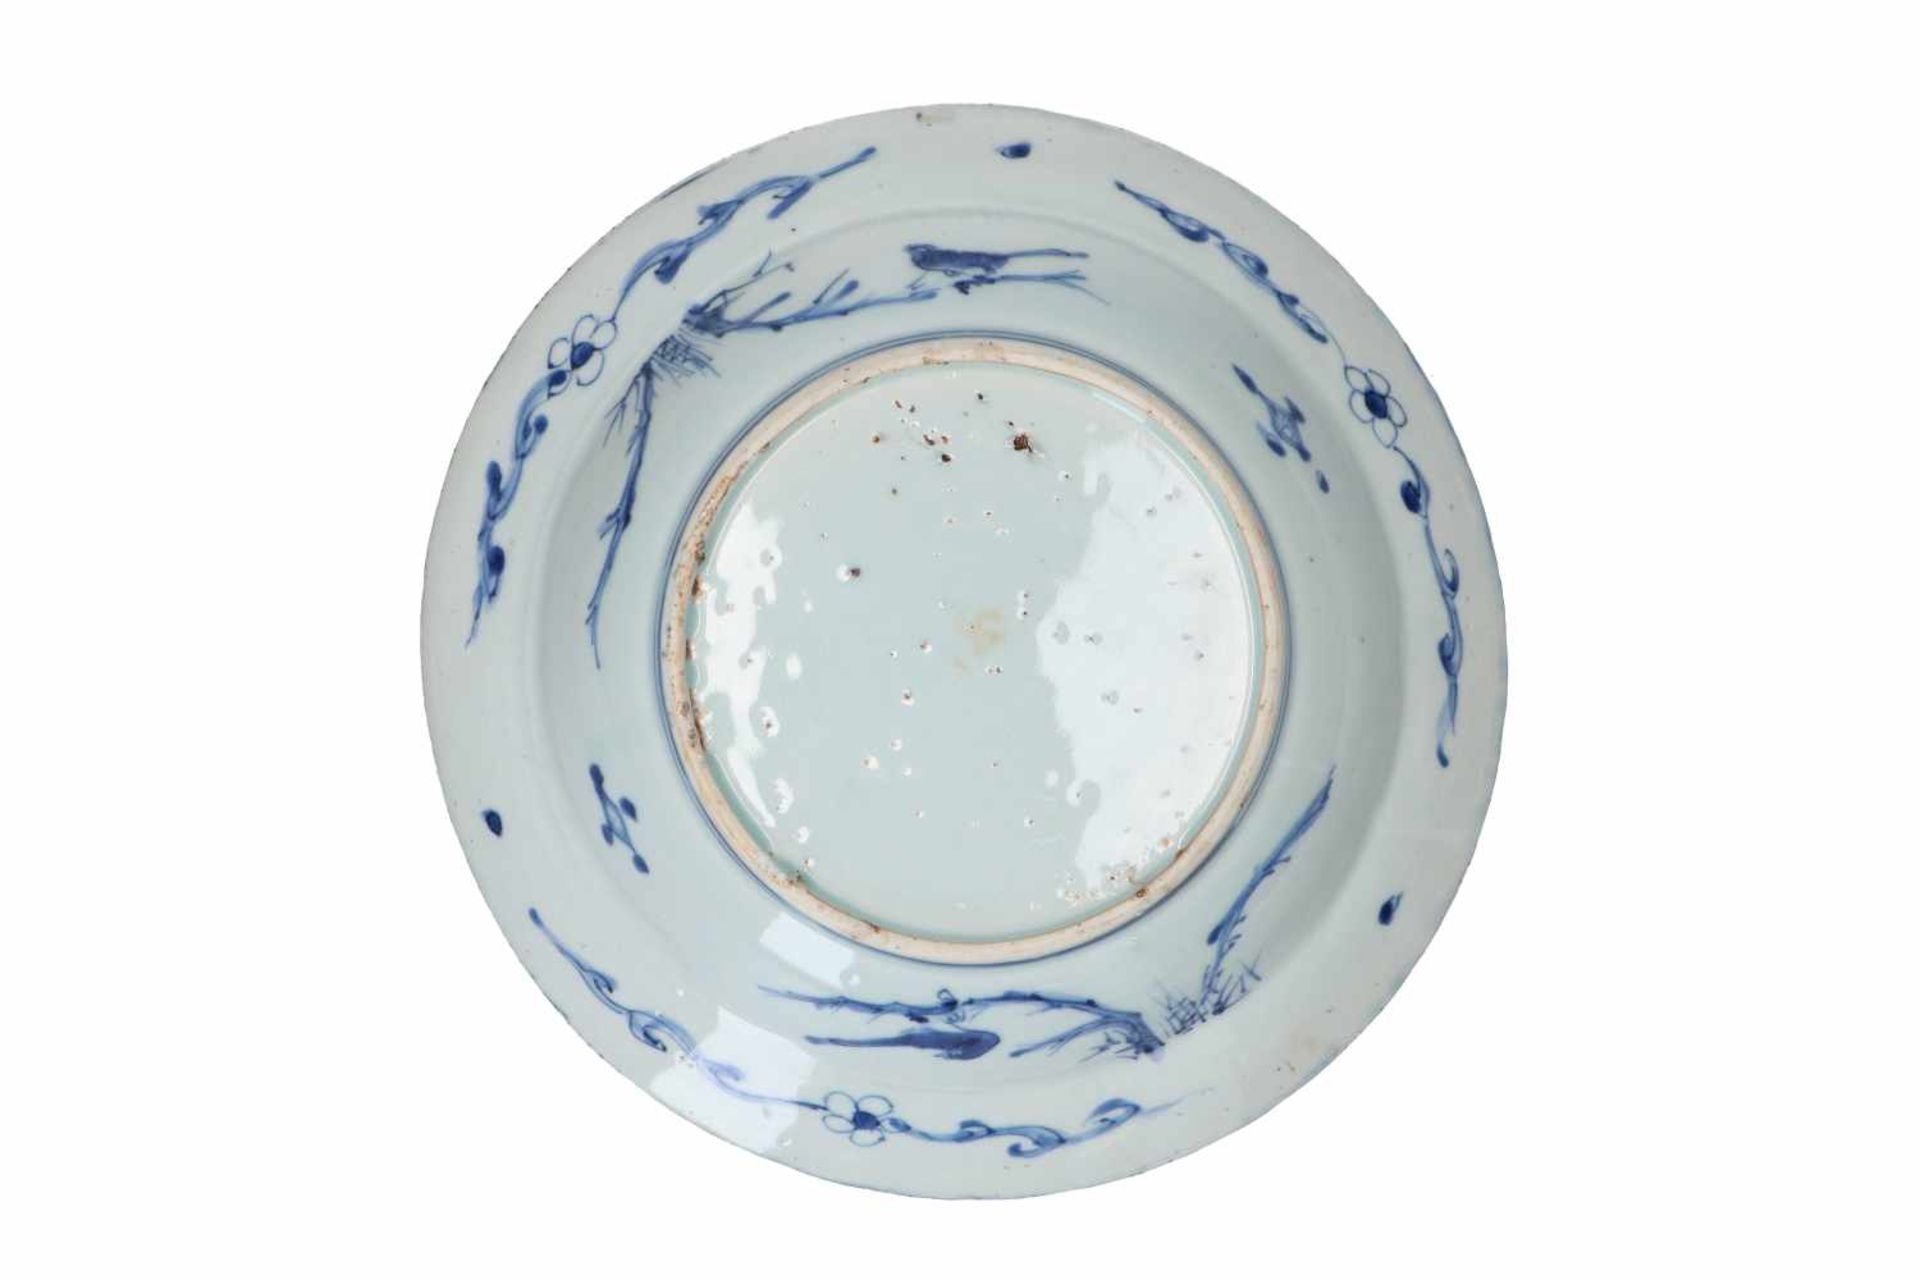 A blue and white 'kraak' porcelain deep dish, decorated with flowers, fruits and birds. Unmarked. - Bild 2 aus 2